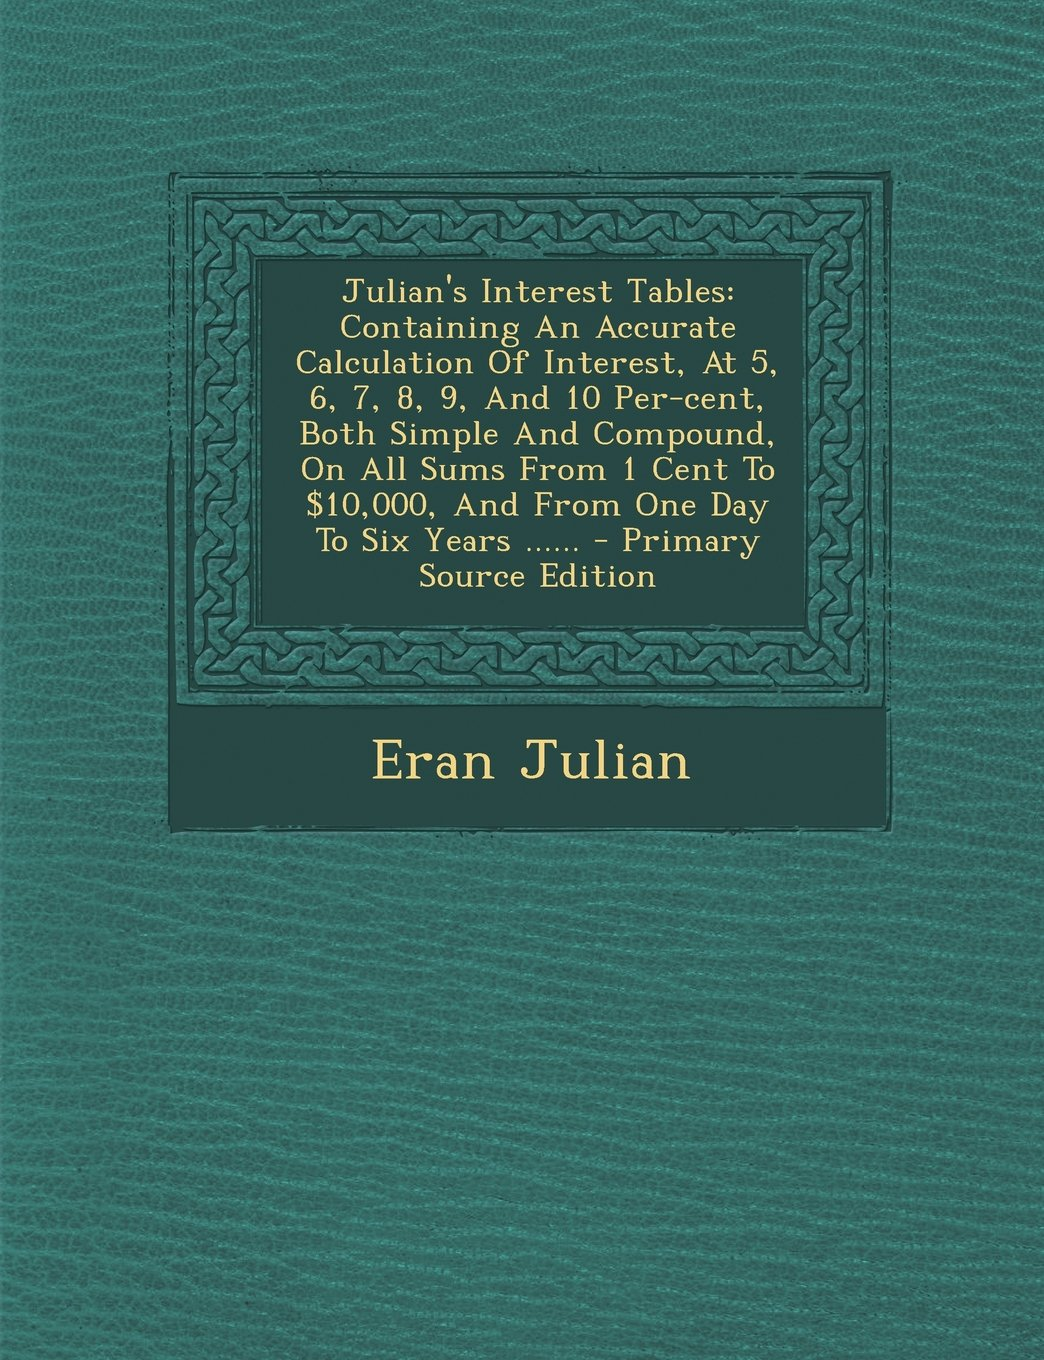 Read Online Julian's Interest Tables: Containing An Accurate Calculation Of Interest, At 5, 6, 7, 8, 9, And 10 Per-cent, Both Simple And Compound, On All Sums ... To Six Years ...... - Primary Source Edition pdf